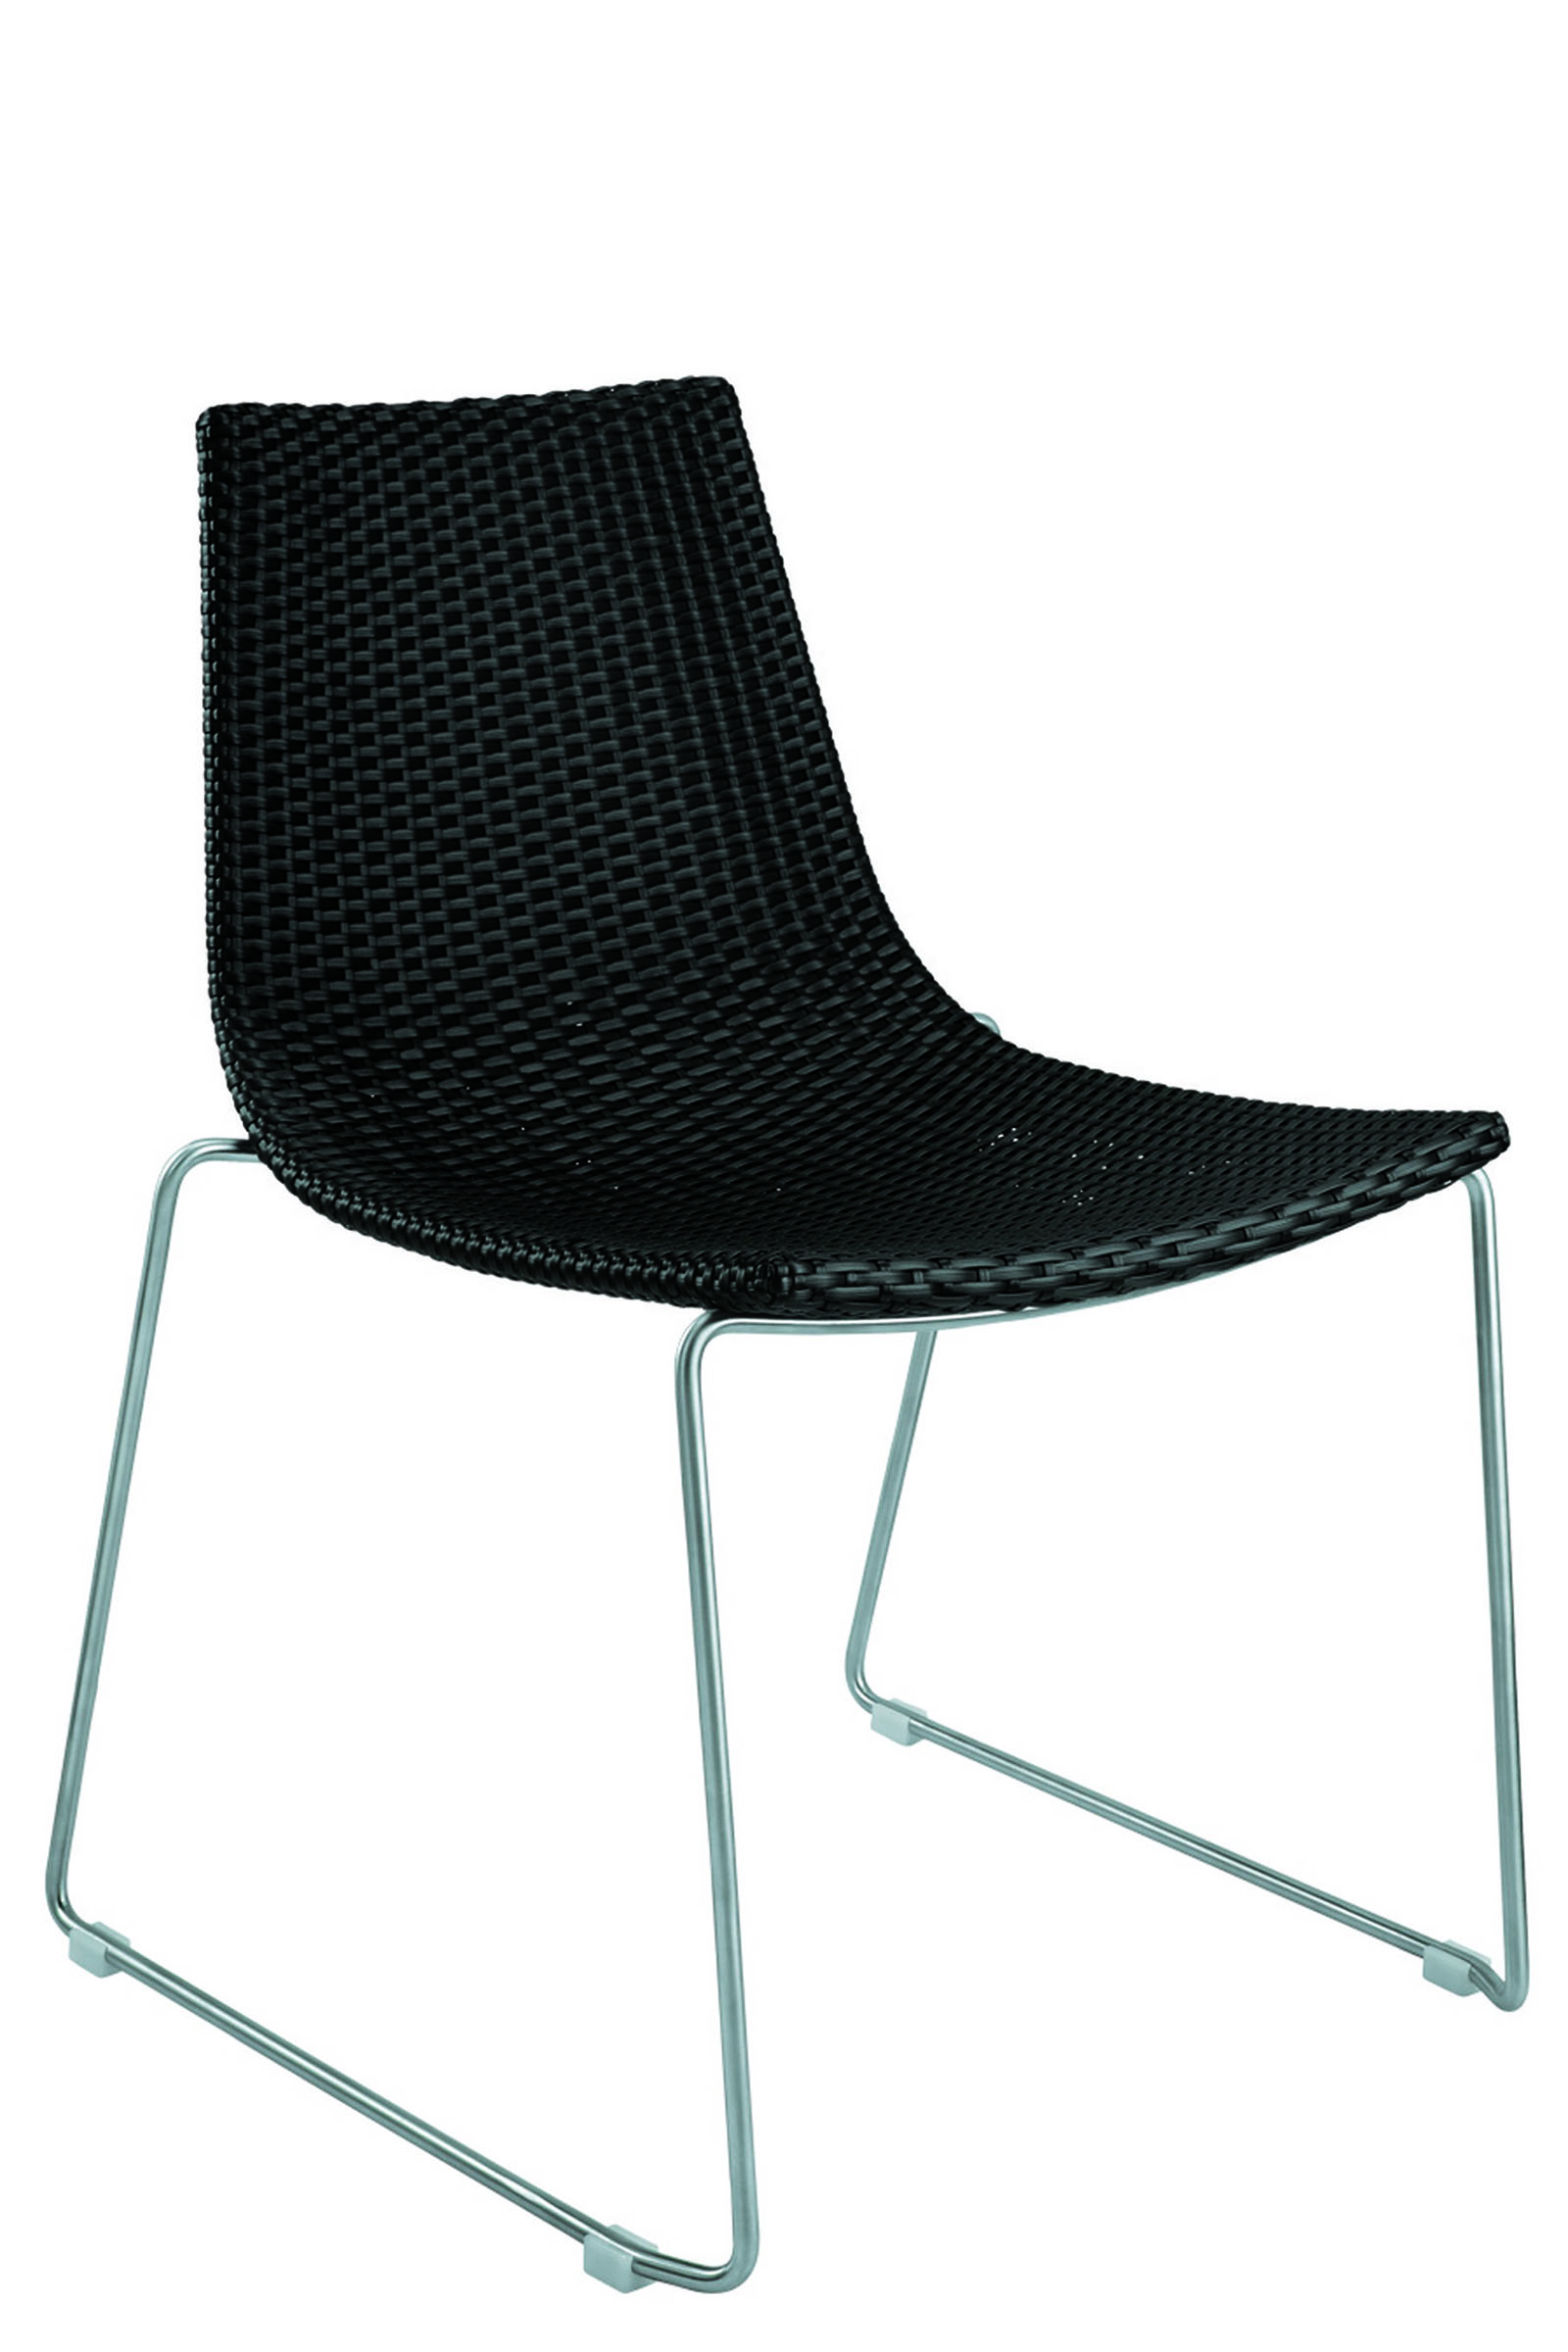 AL-7907-01-R DYNAMIC SIDECHAIR BLACK REEDED